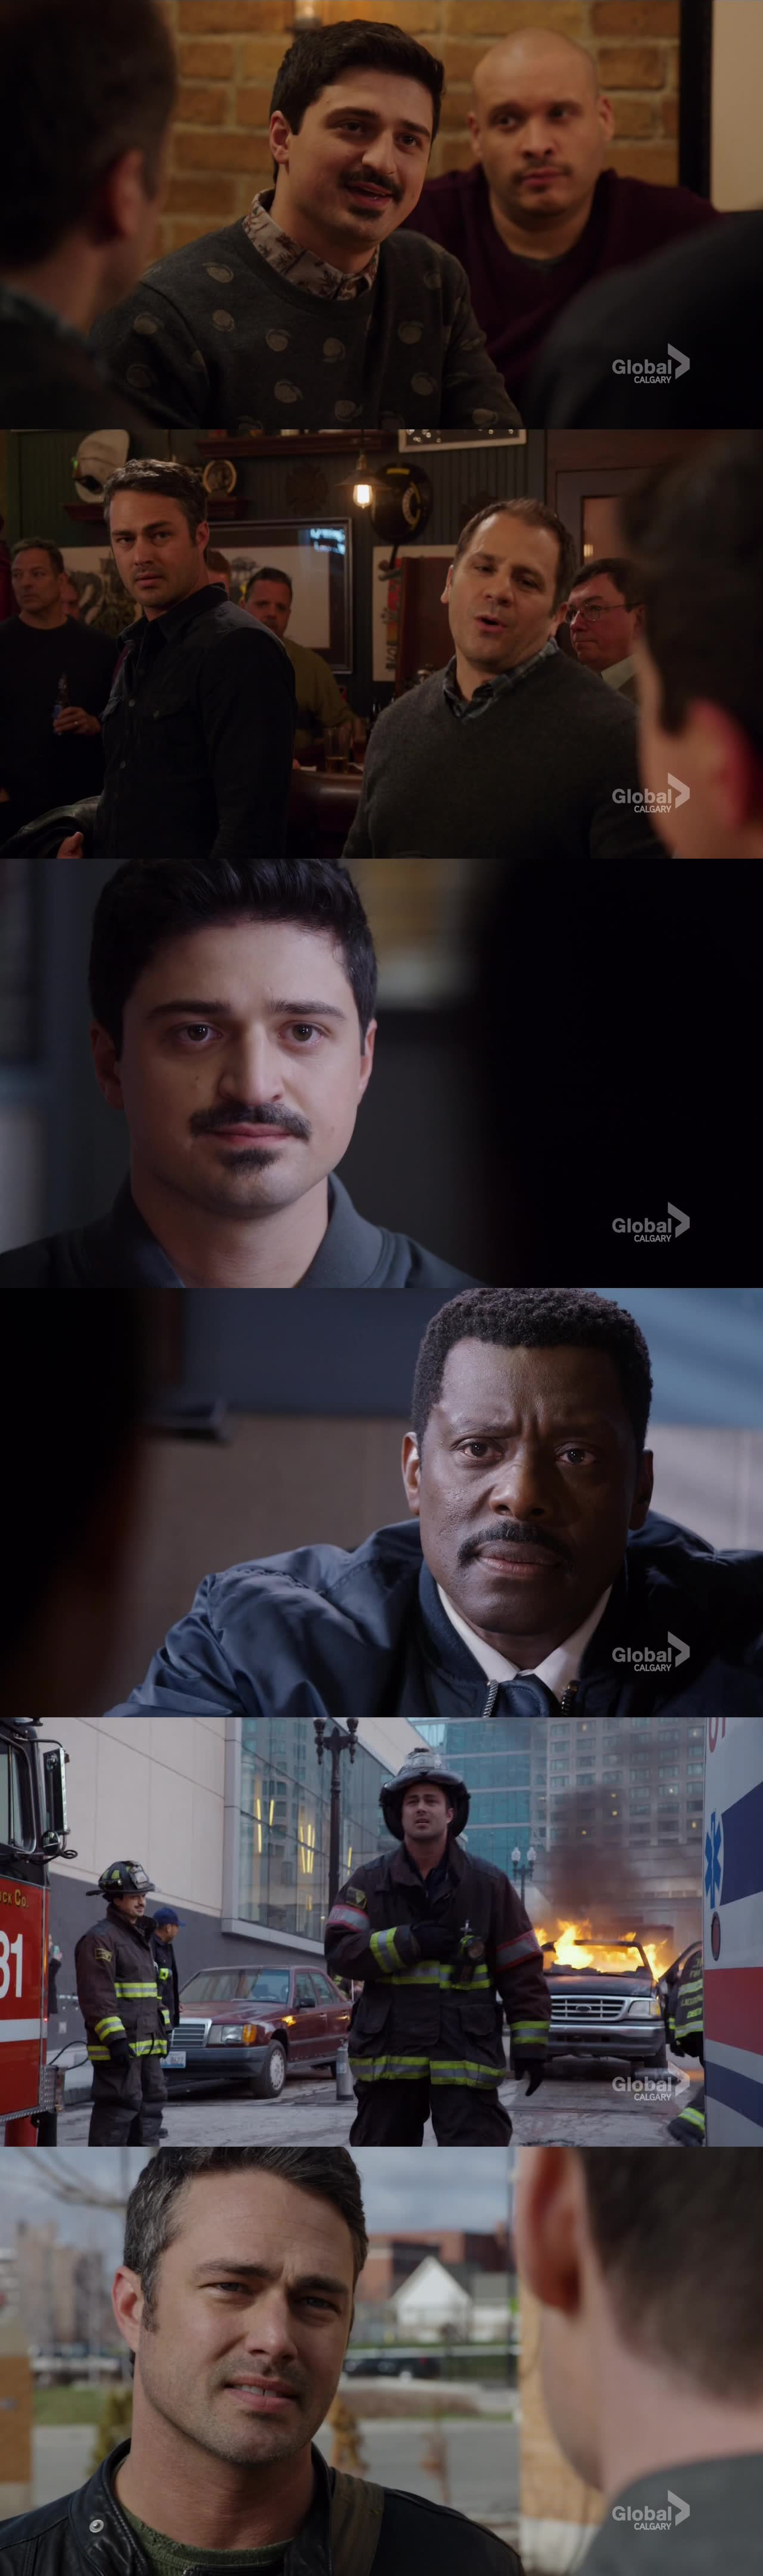 Otis is annoying me so much on that one! I'm totally on Team Severide. Because of Otis, Severide starts doubting on Rice and now he lost a friend. Seriously Otis, SHUT UP !!!